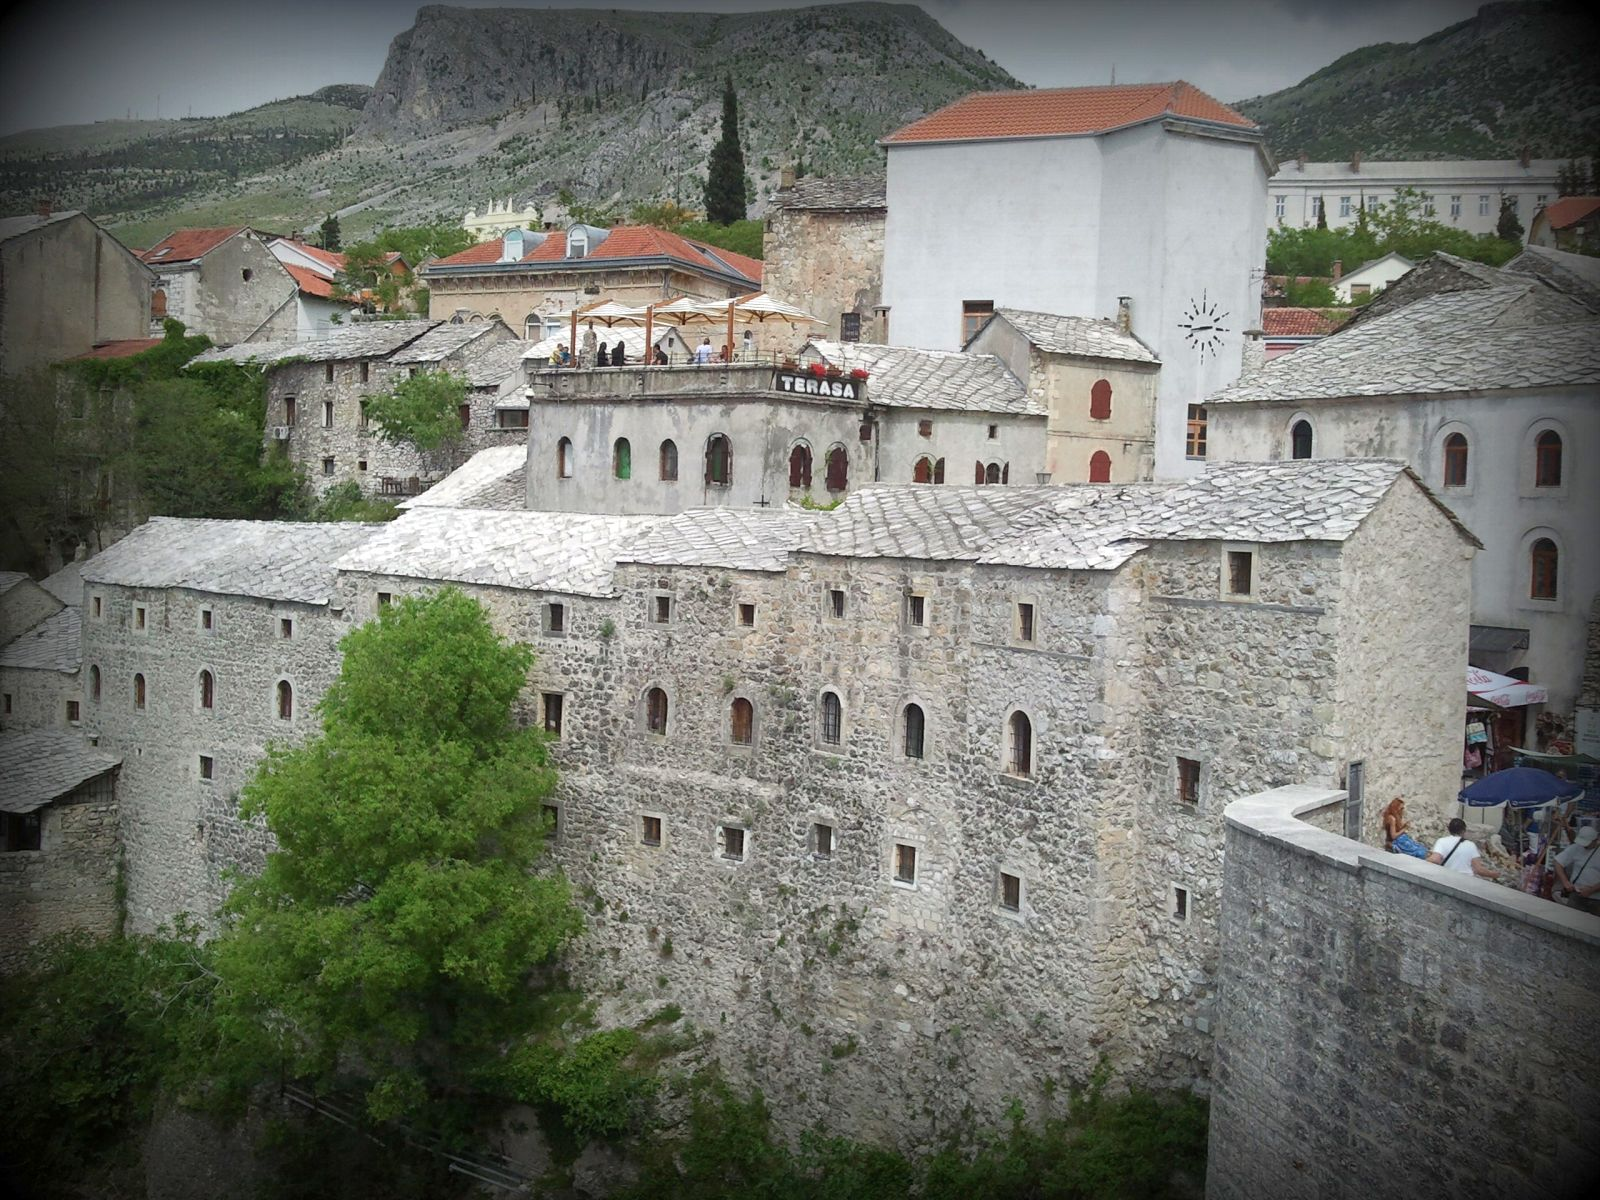 -images-excursions-mostar-tour--mostar-tour-08.jpg